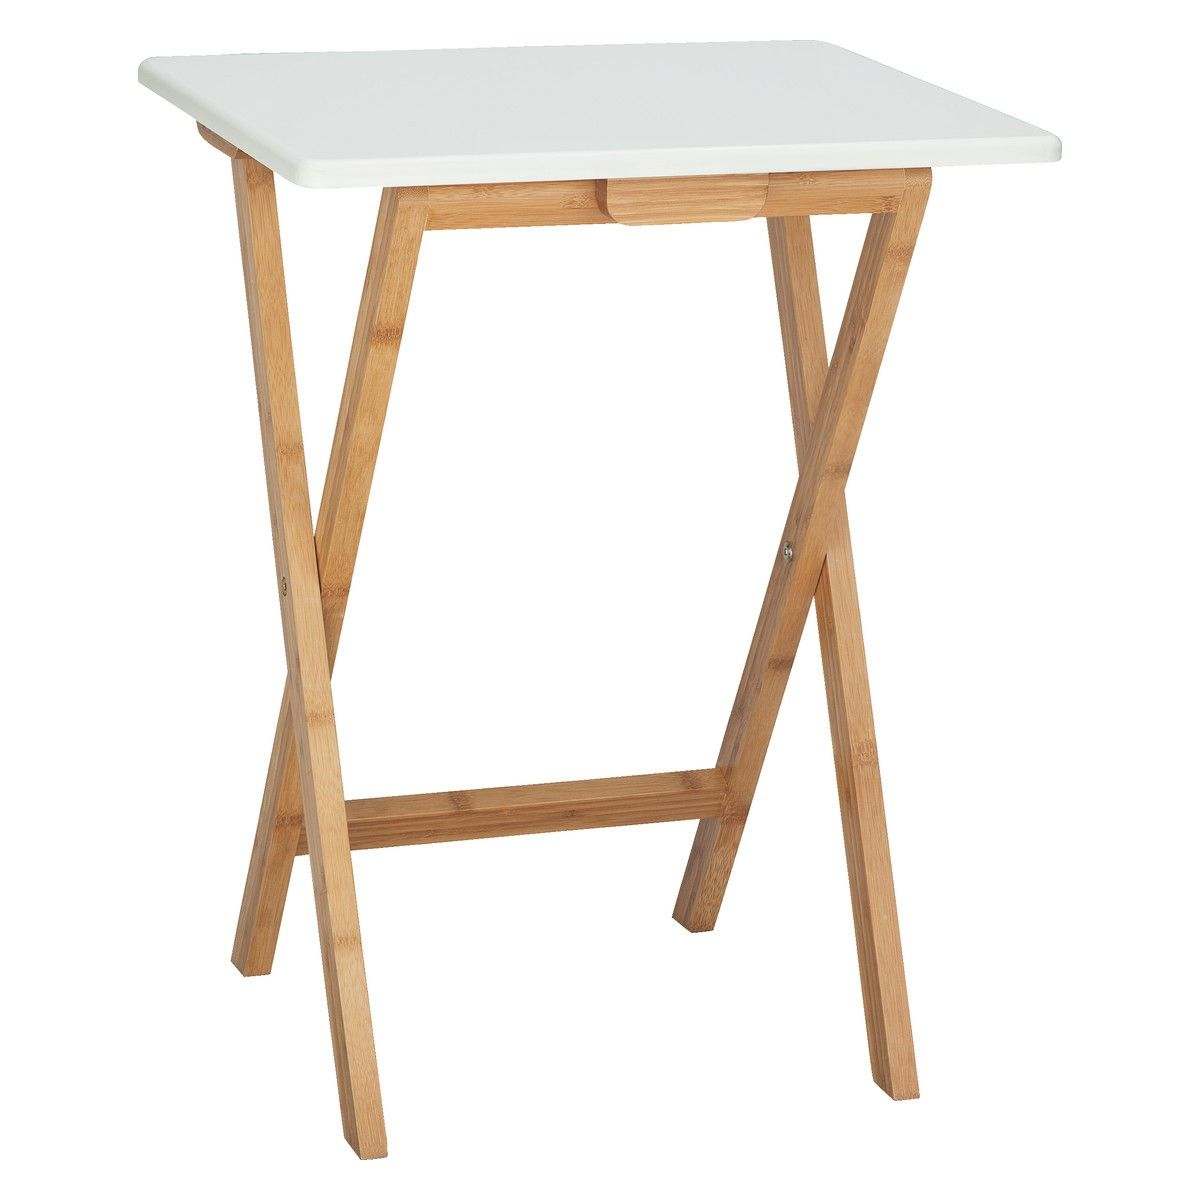 Genial DREW Bamboo And White Lacquer Folding Side Table | Buy Now At Habitat UK